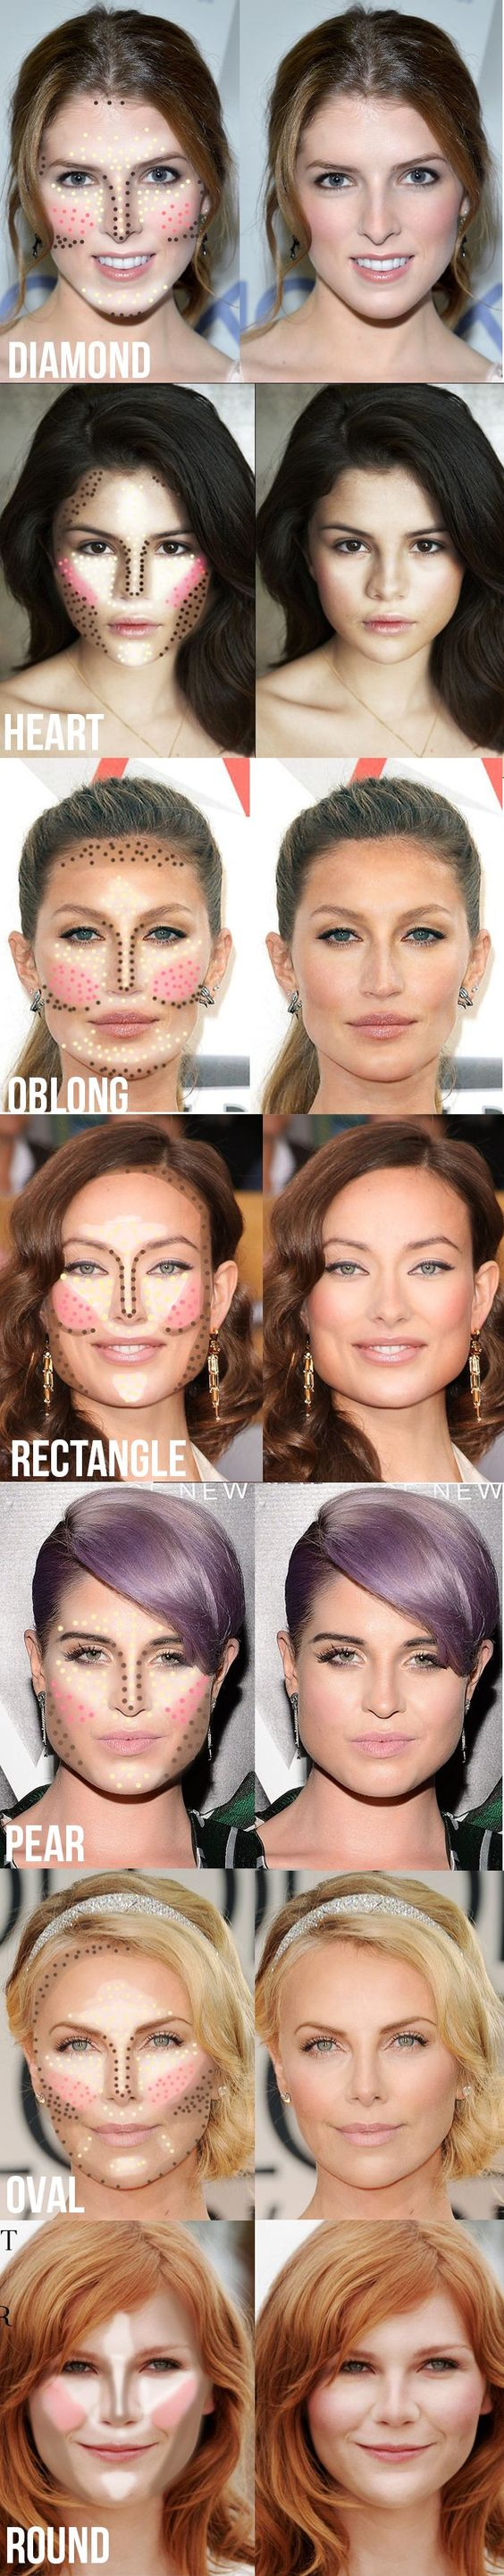 Face shape guide to contouring. - Orglamix Best Mineral Makeup: All Natural, Vegan, Cruelty-Free Cosmetics